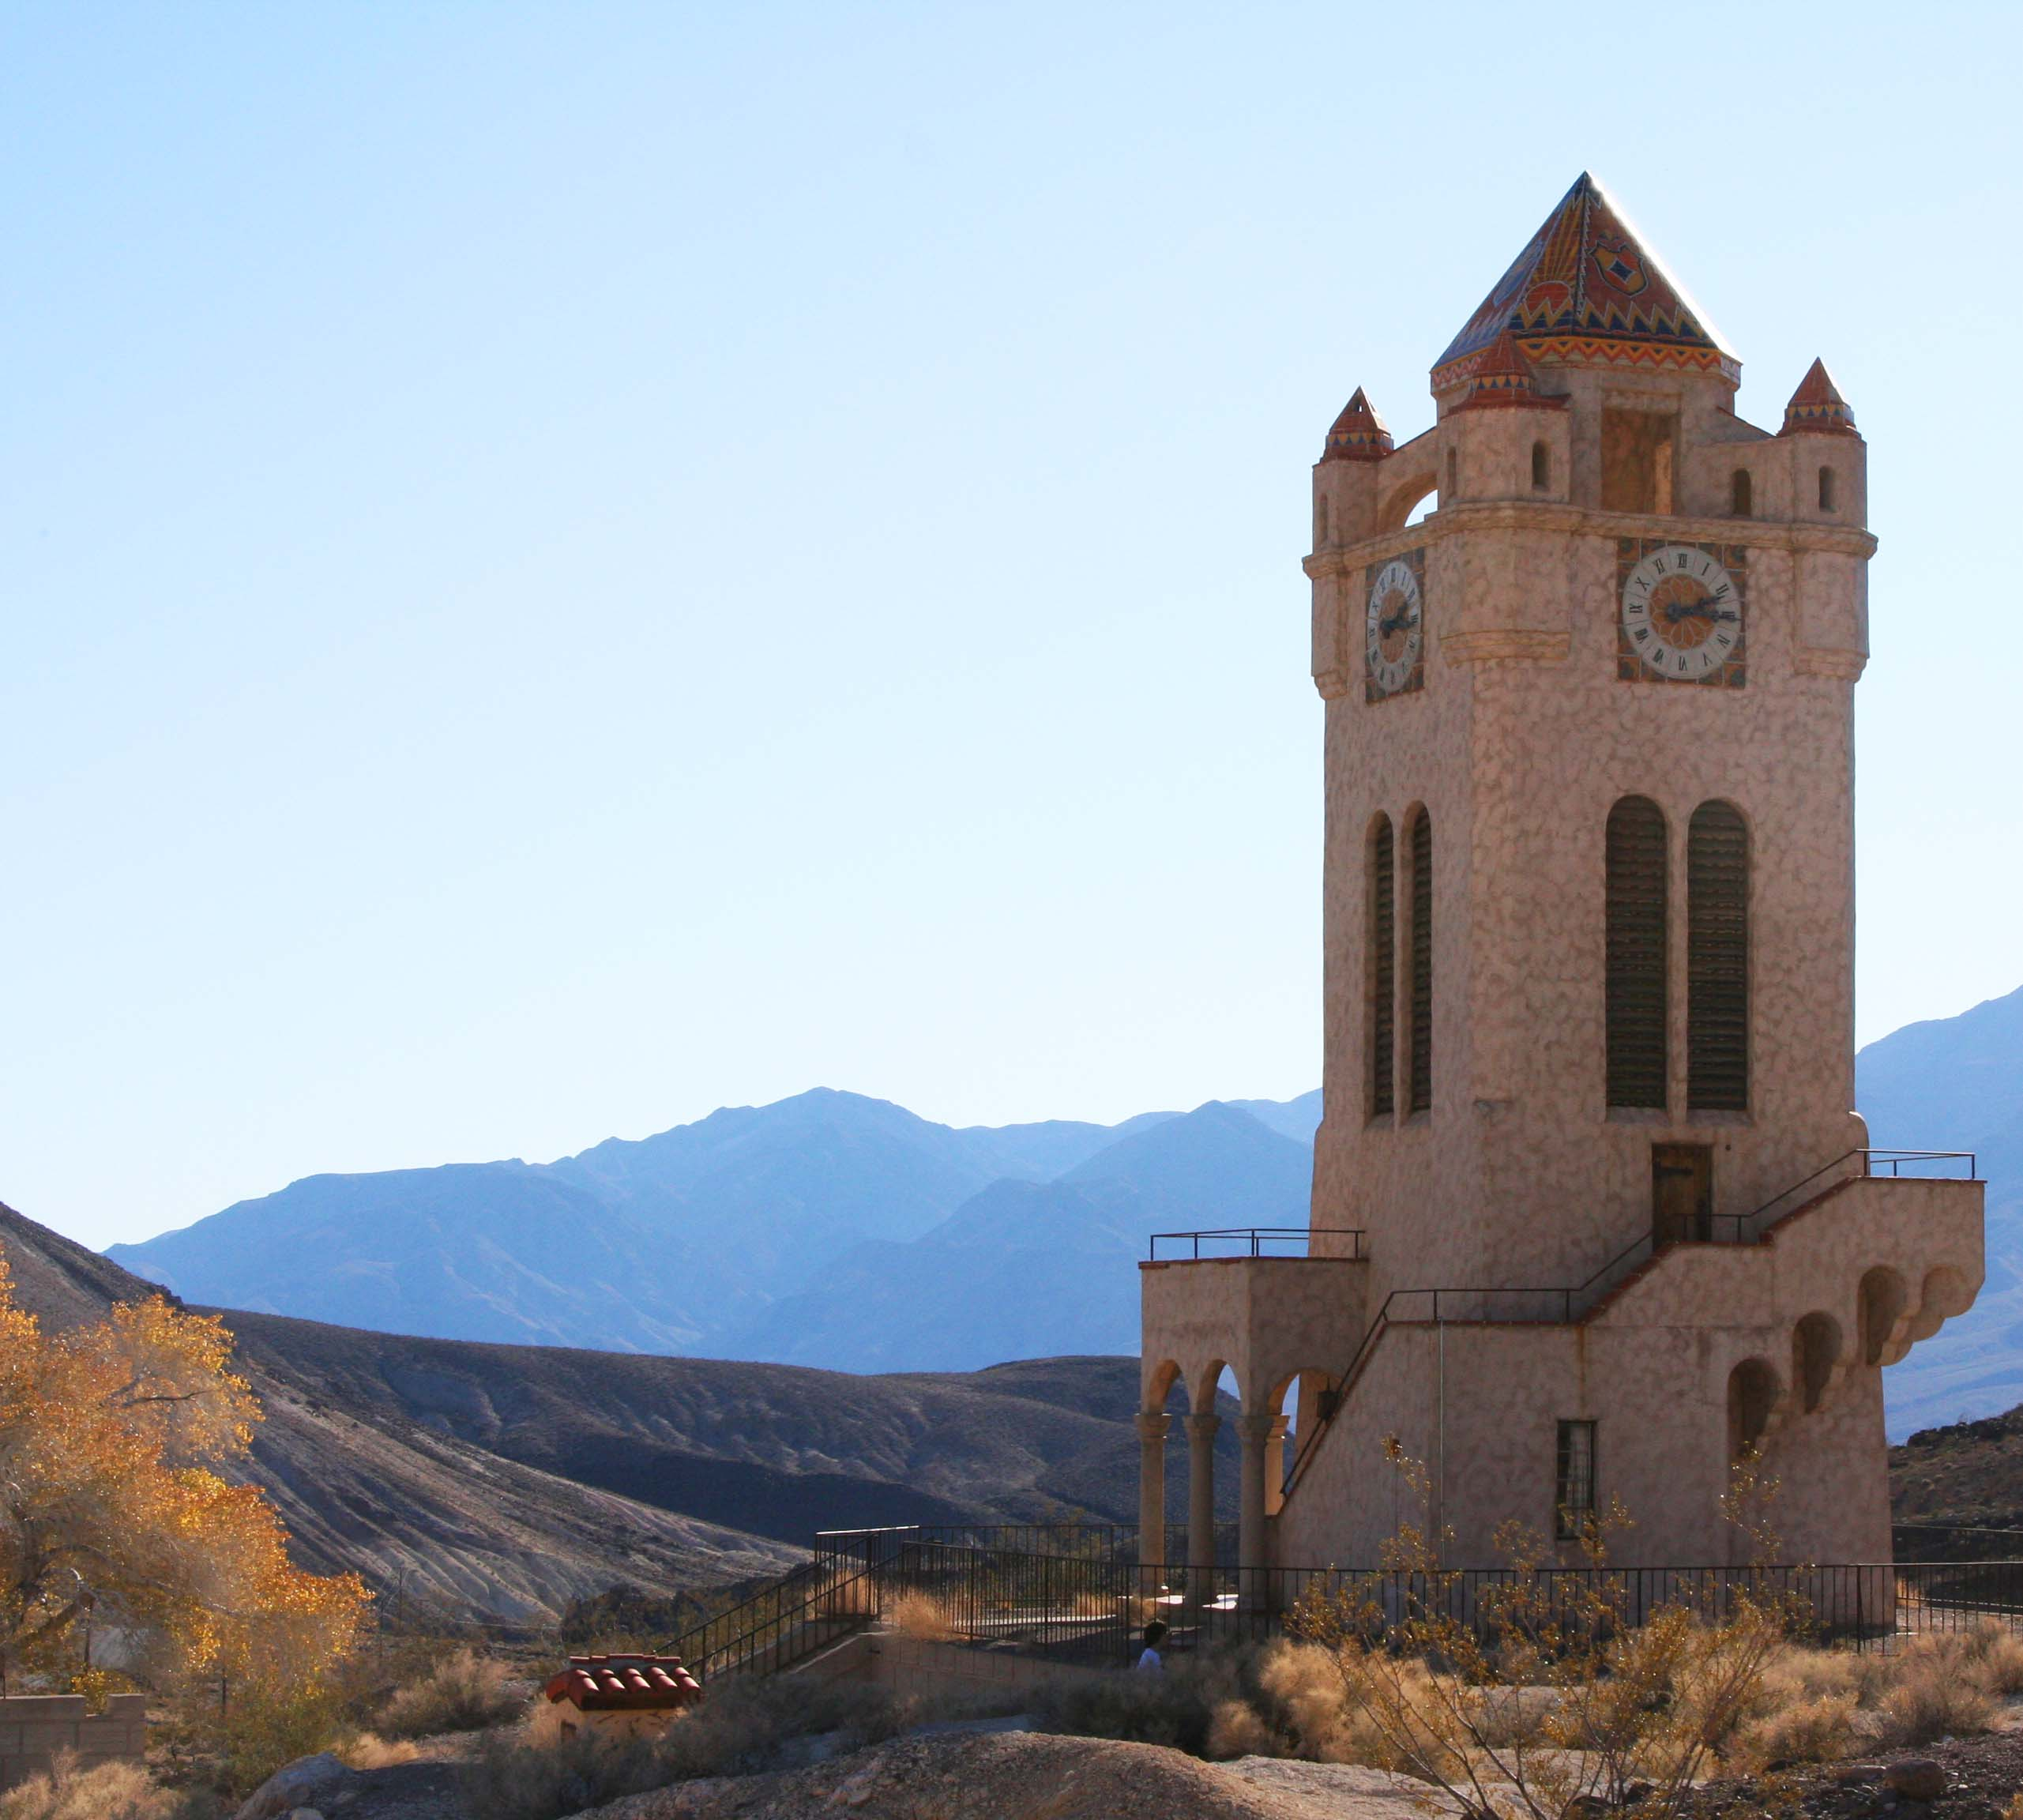 Scotty's Castle at Death Valley. Photograph by Curtis Mekemson.